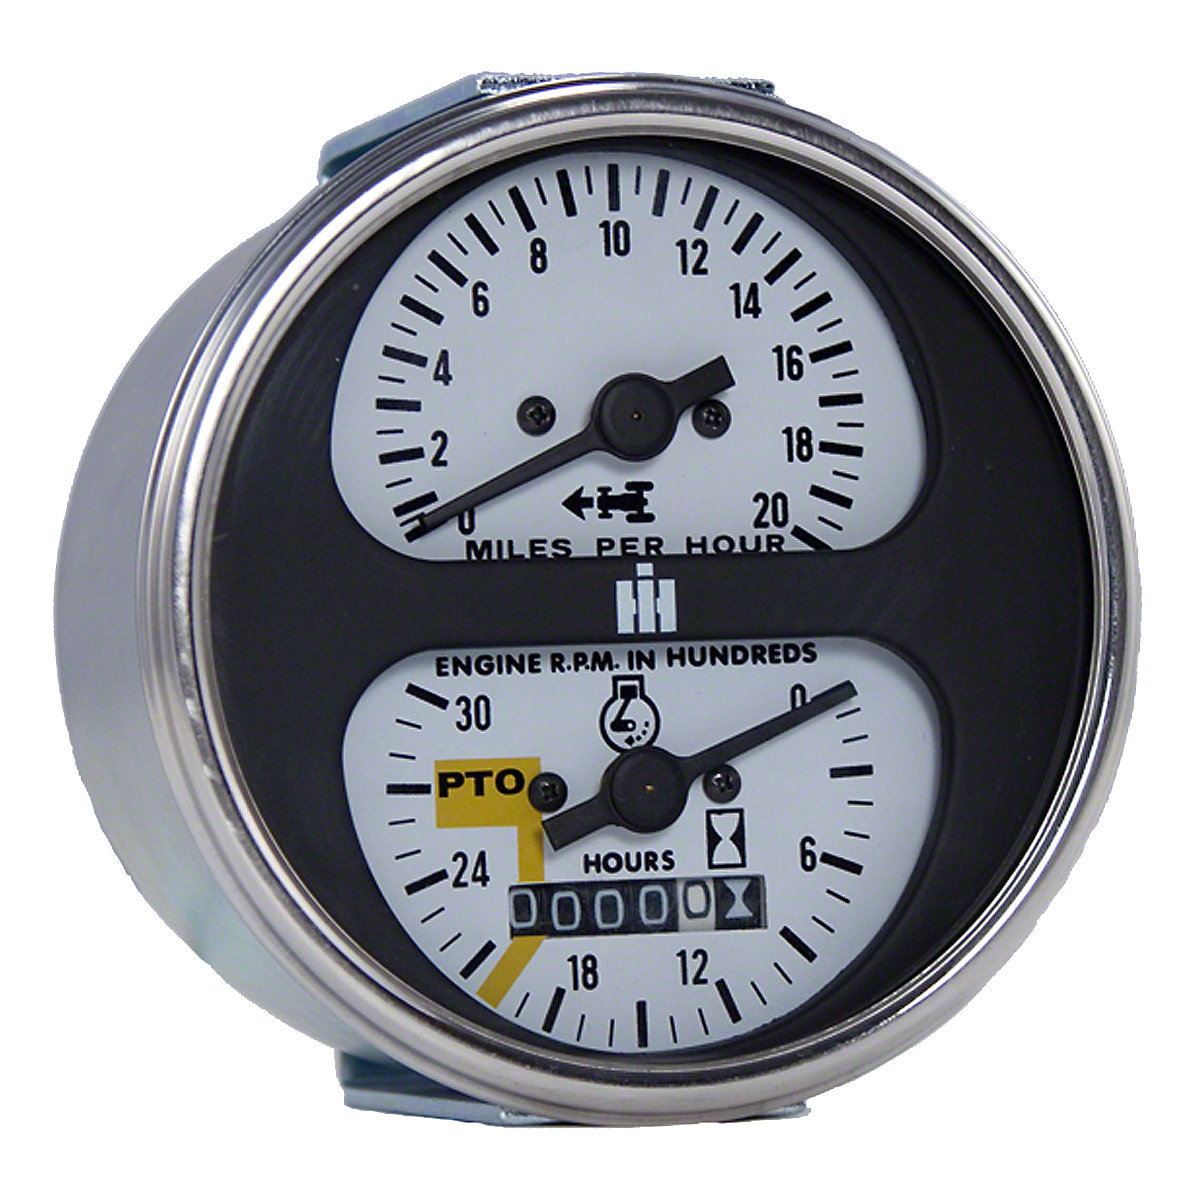 Ih Cluster Gauge Assembly 656 Diesel Fuel Farmall Wiring Harness Tachometer Fits 966 Others With Hydro Transmission